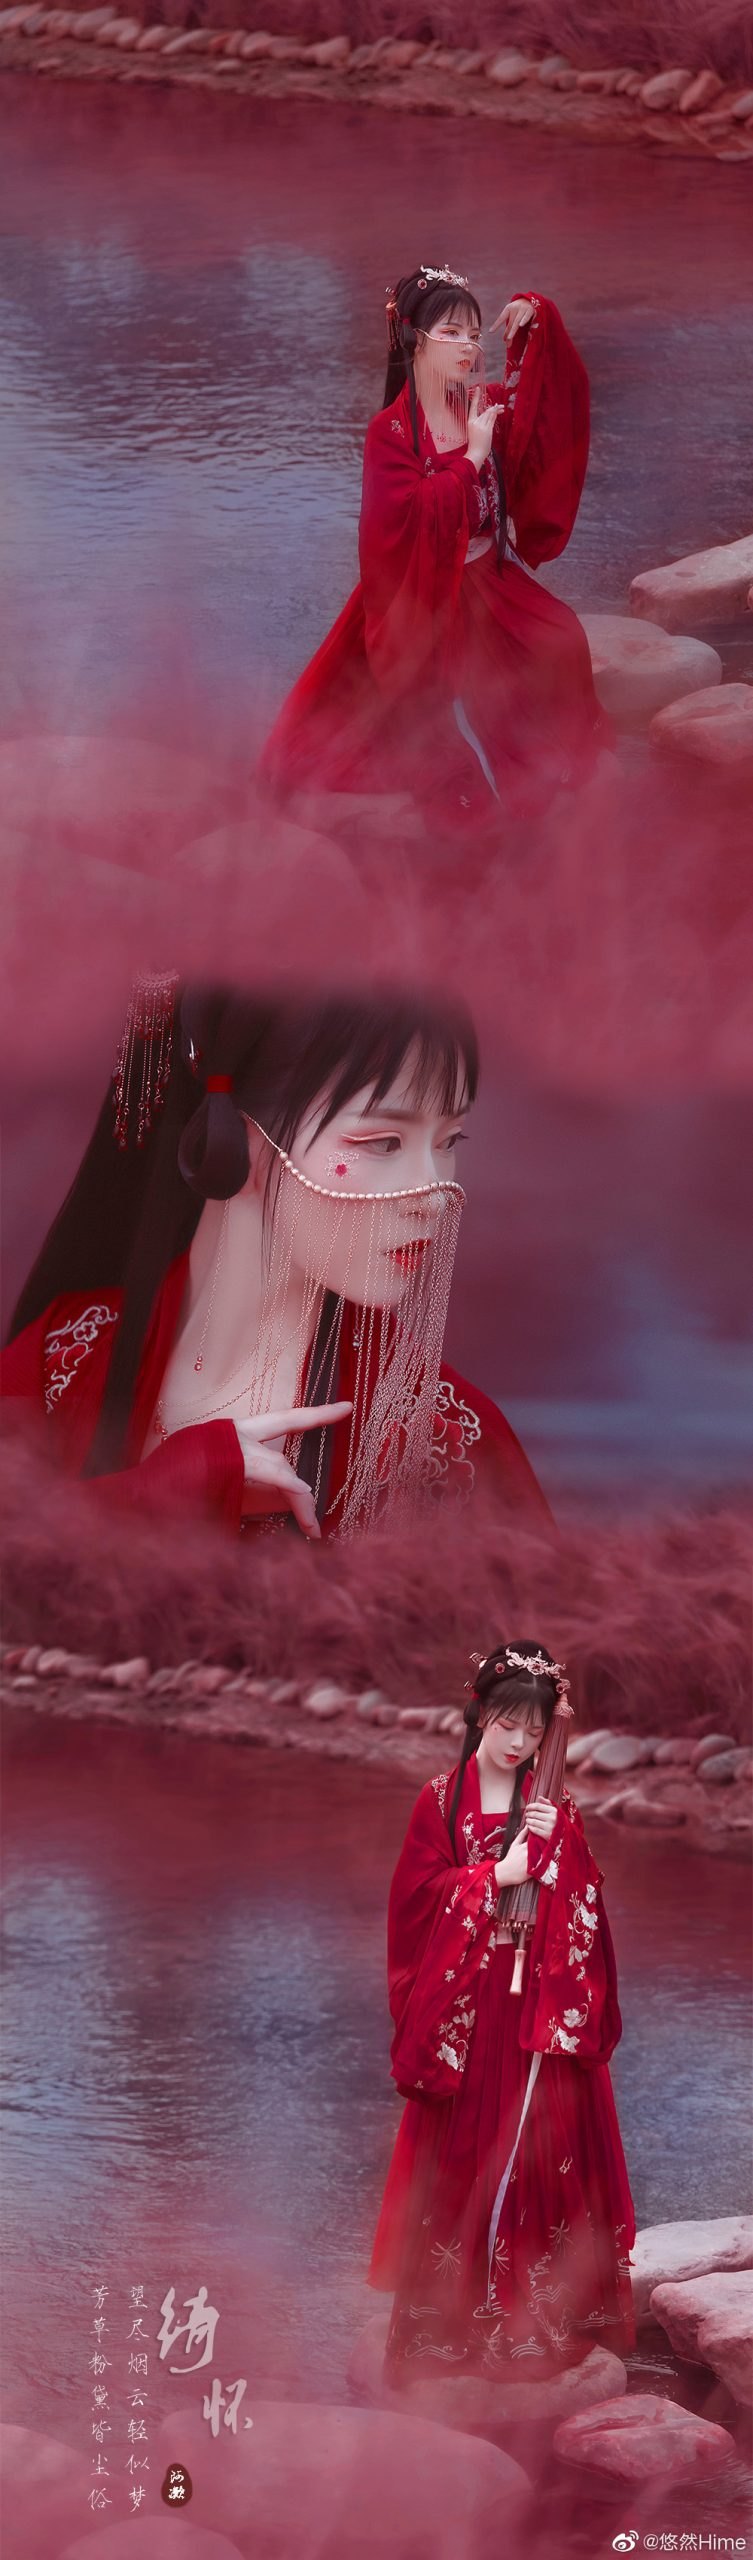 Chinese beautiful girl - Cosplay Princess with historical costume